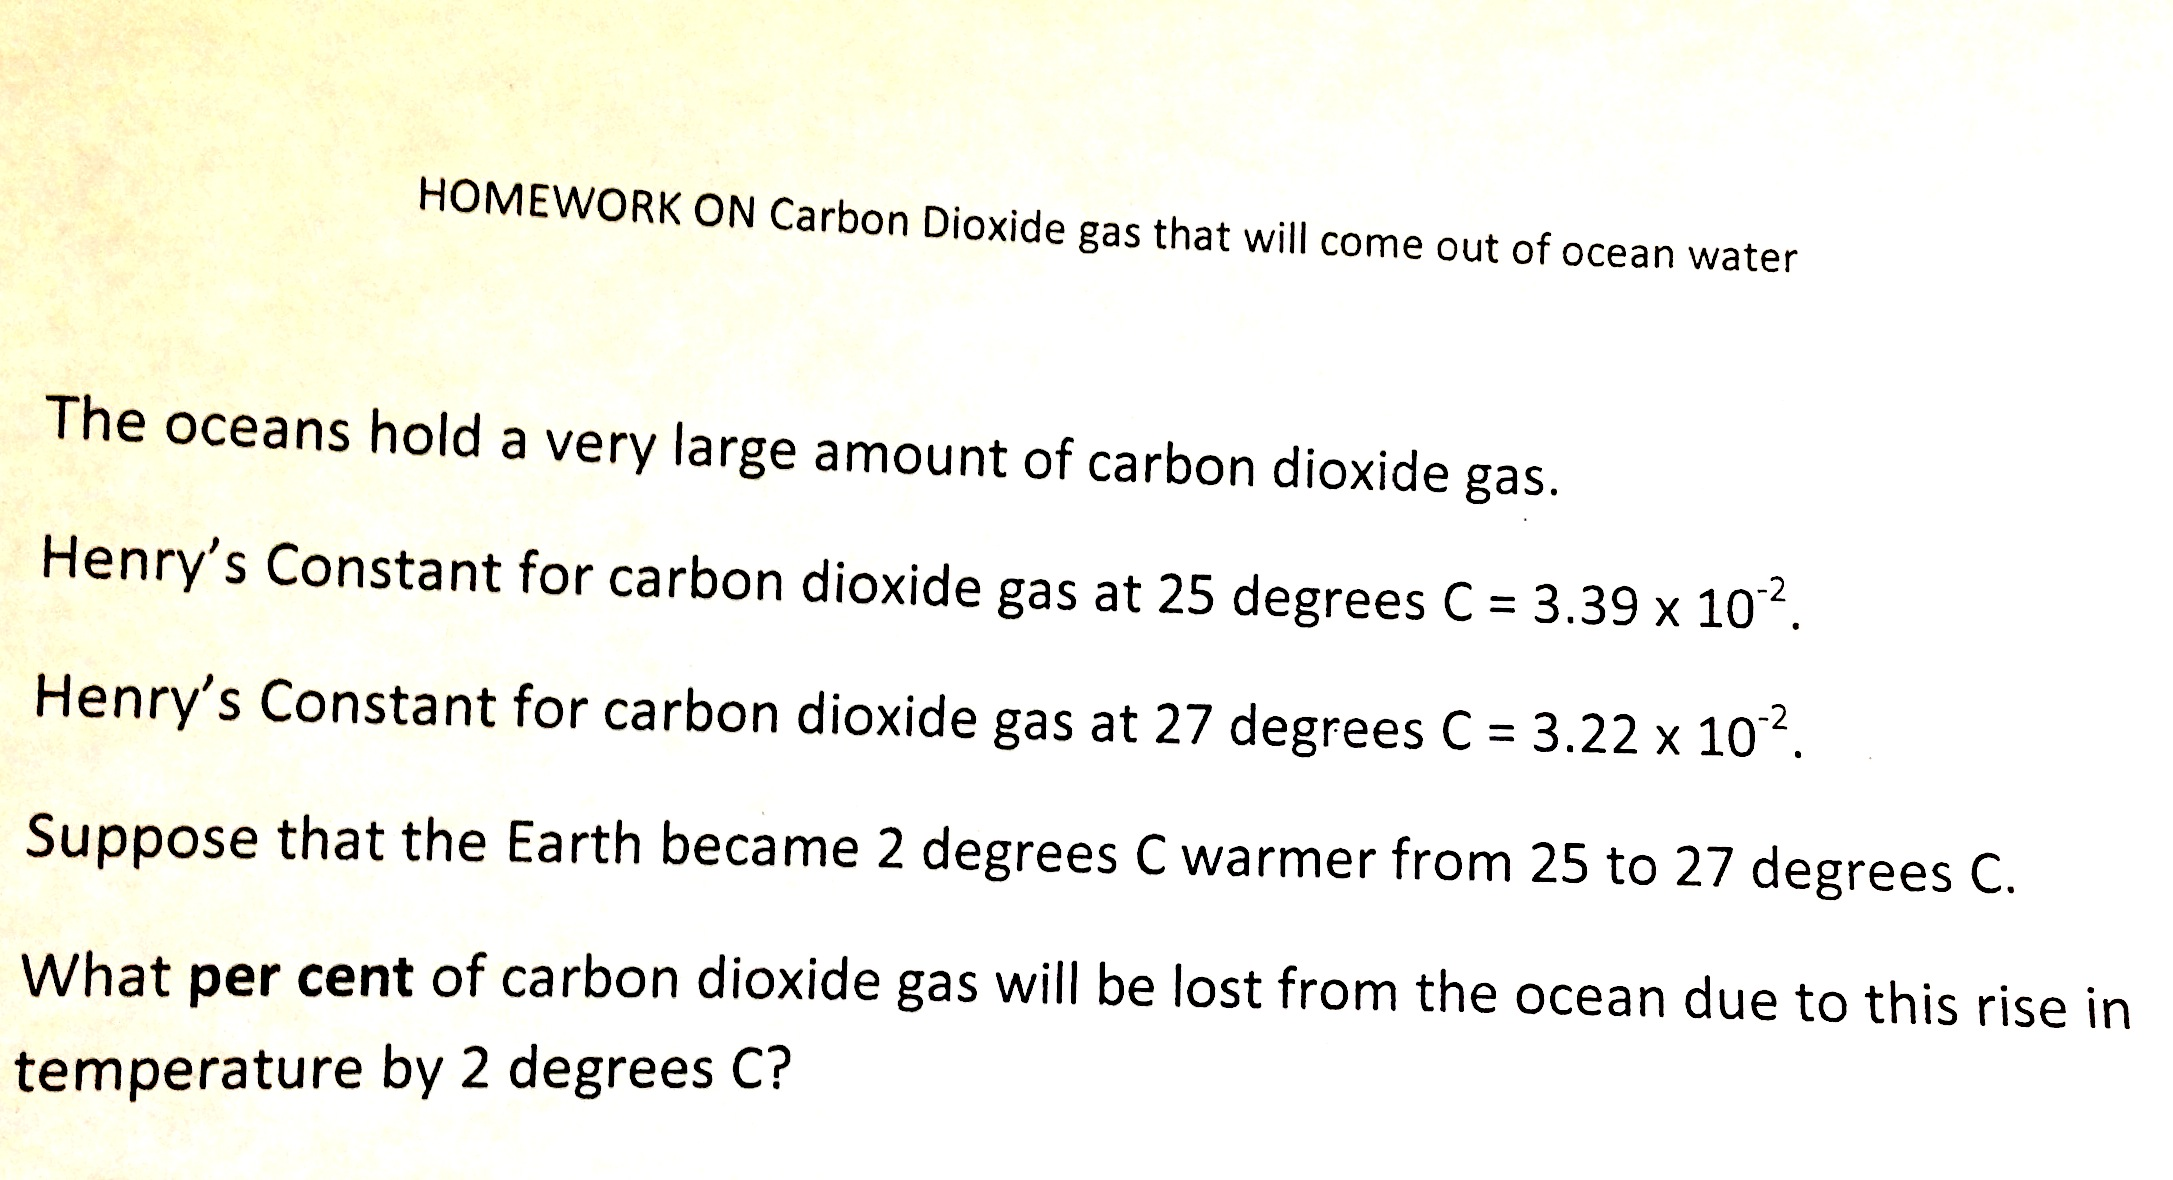 HOMEWORK ON Carbon Dioxide gas that will come out